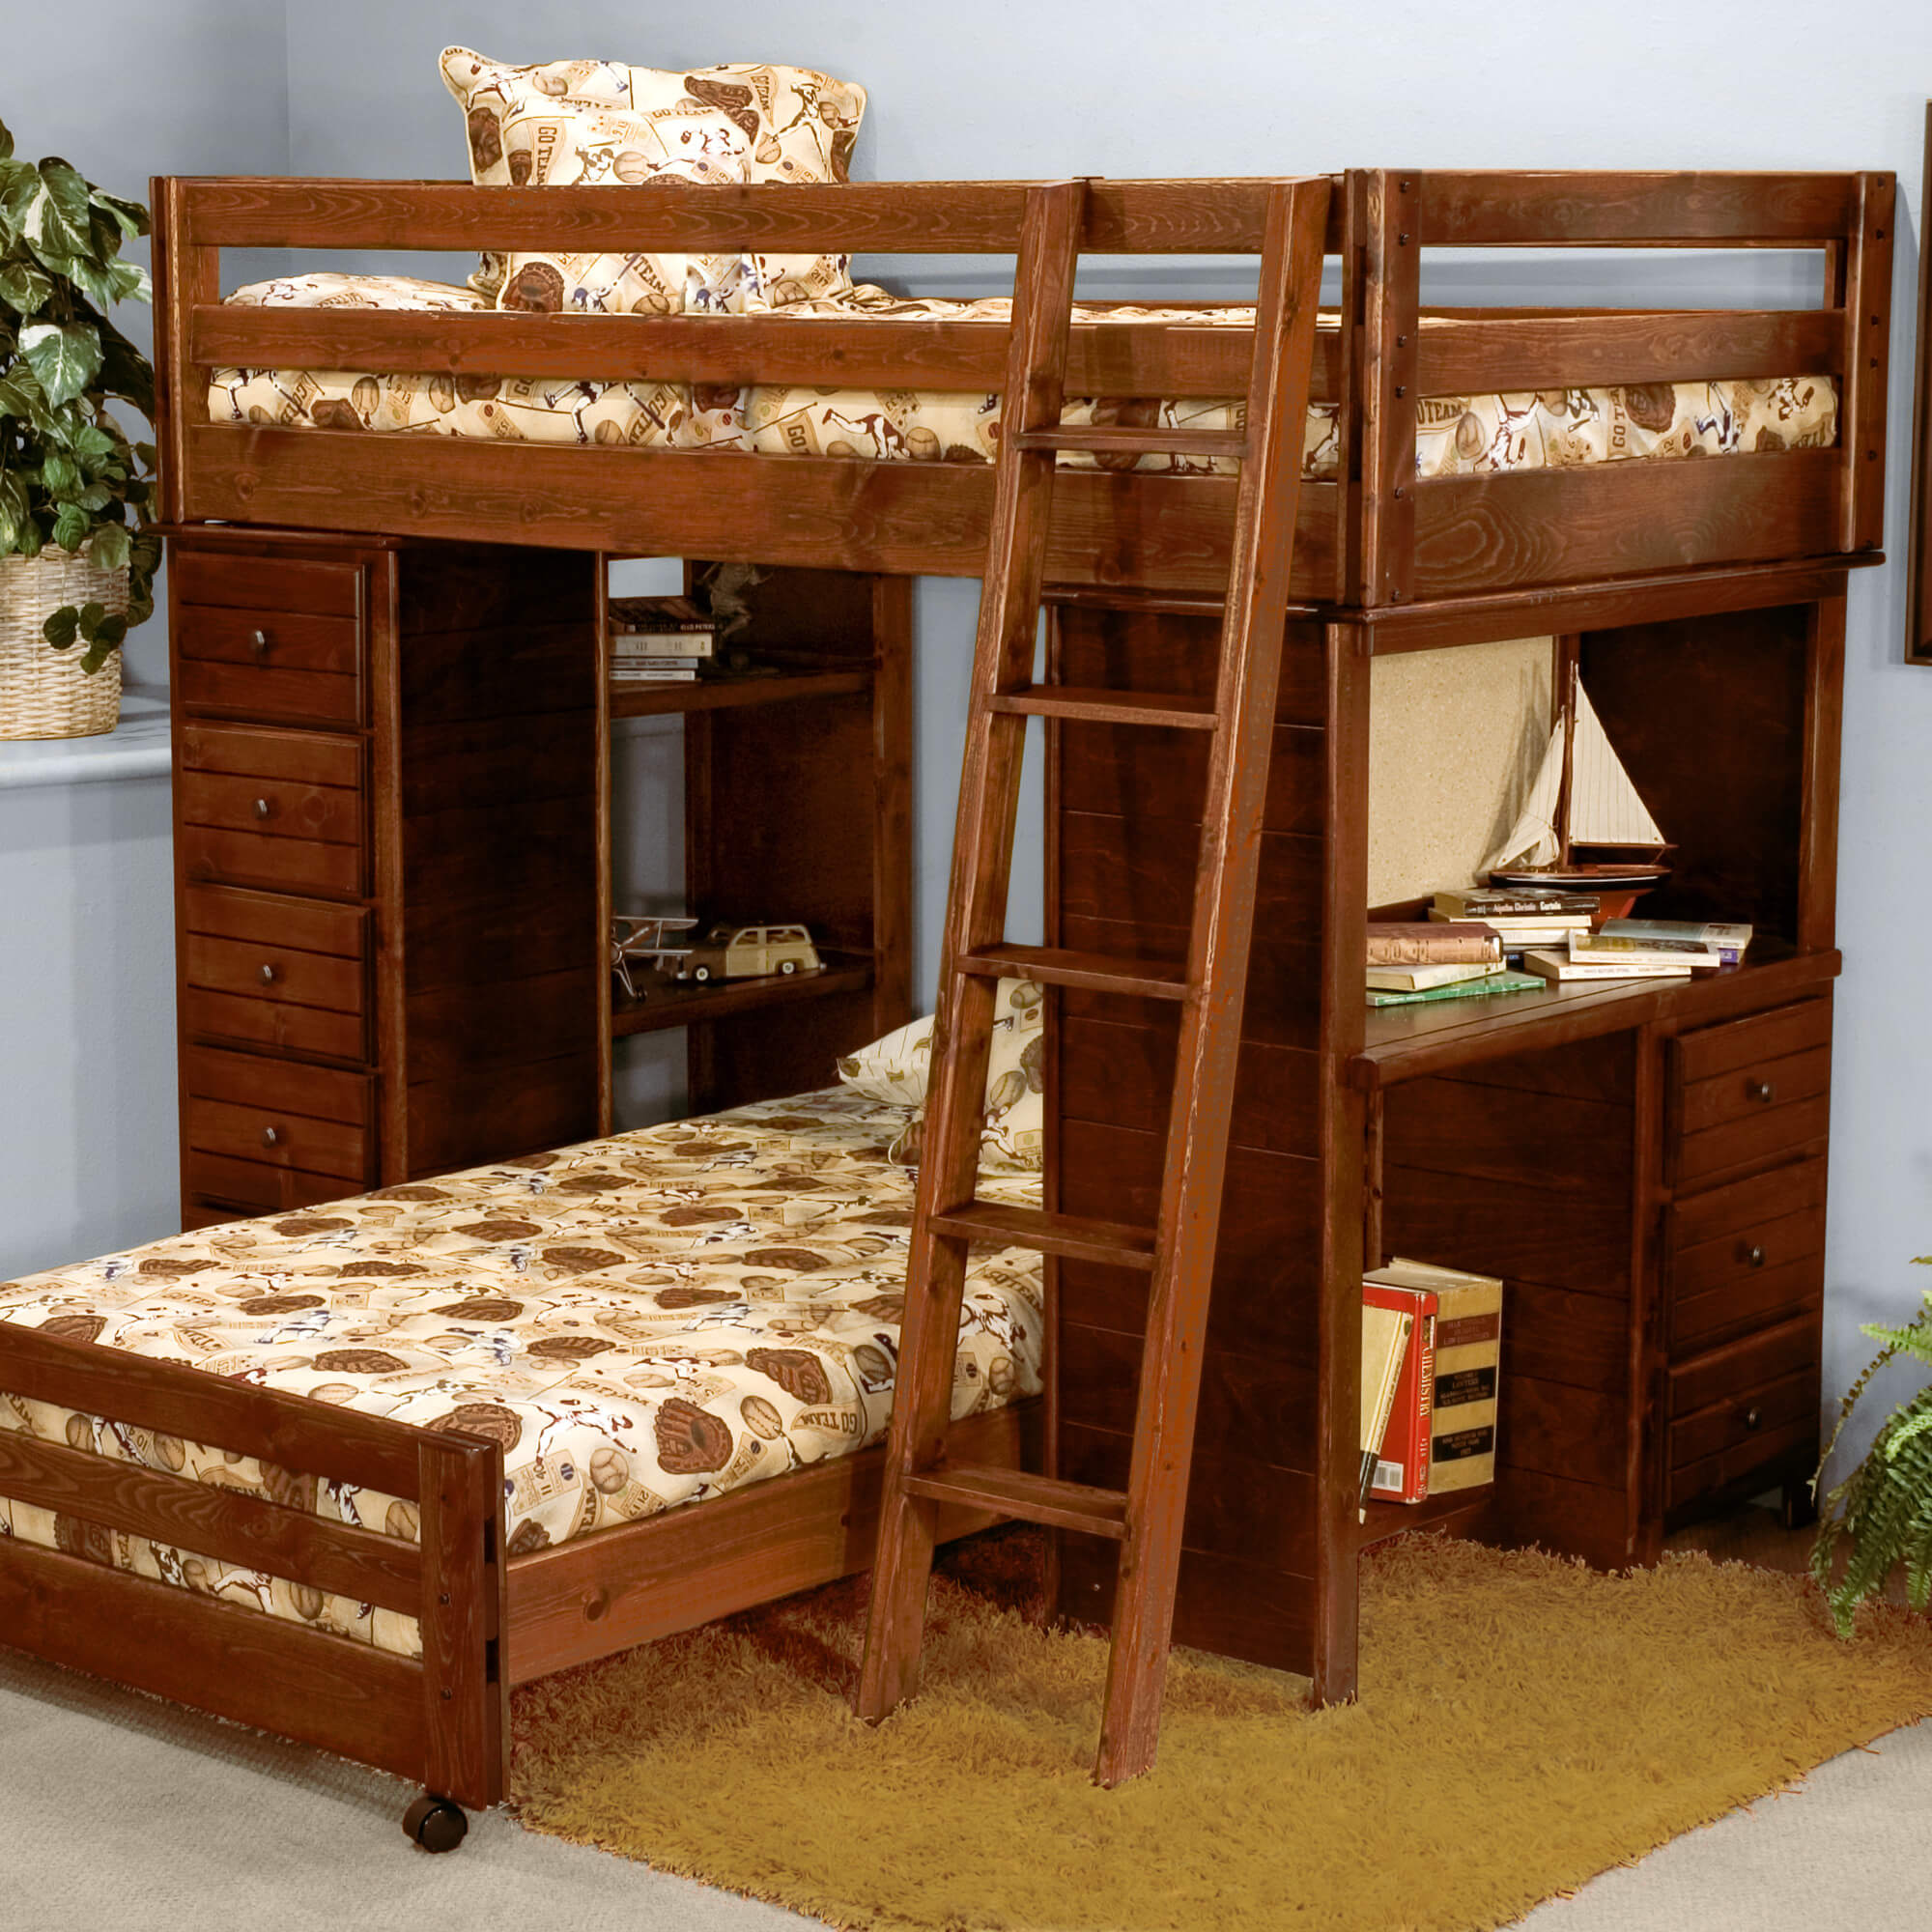 This solid ponderosa pine L-shaped bunk bed offers custom configuration because the lower bed is on wheels which means it can be placed elsewhere in the room. The upper bunk is supported by side shelving, drawers and a desk unit.